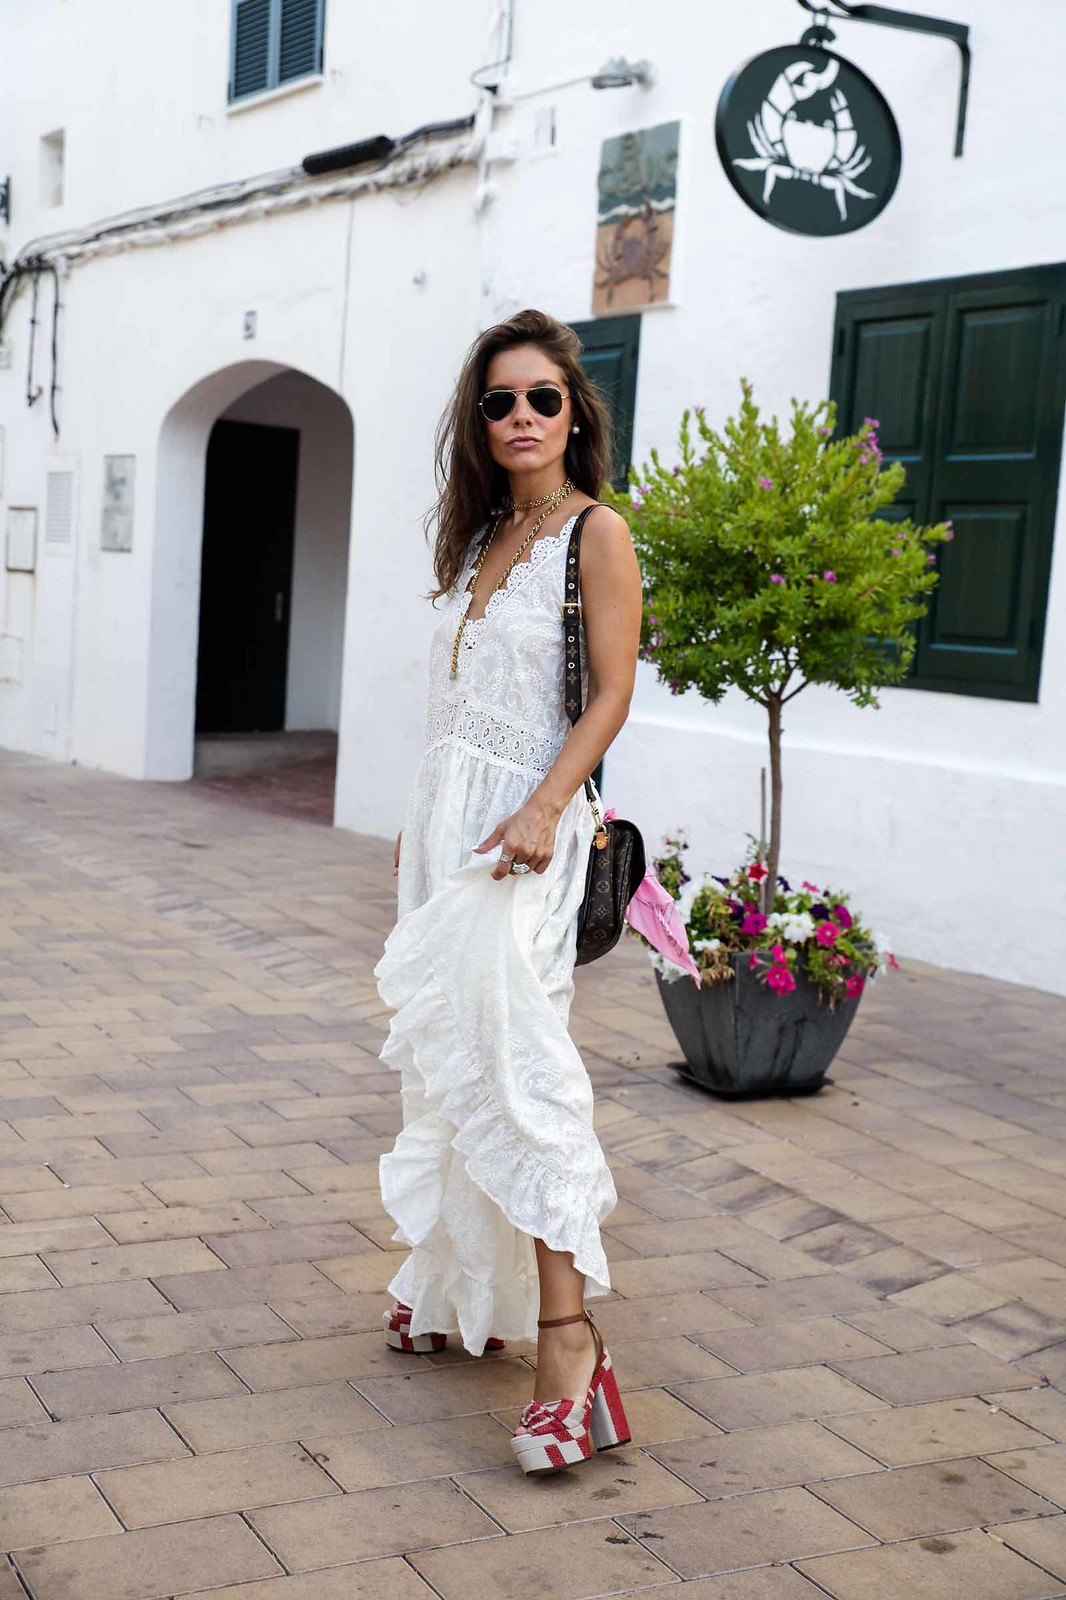 05_vestido_blanco_ibizenco_miss_june_long_dress_outfit_rayban_louis_vuitton_bag_outfit_streetstyle_influencer_barcelona_theguestgirl_the_guest_girl_barcelona_influencer